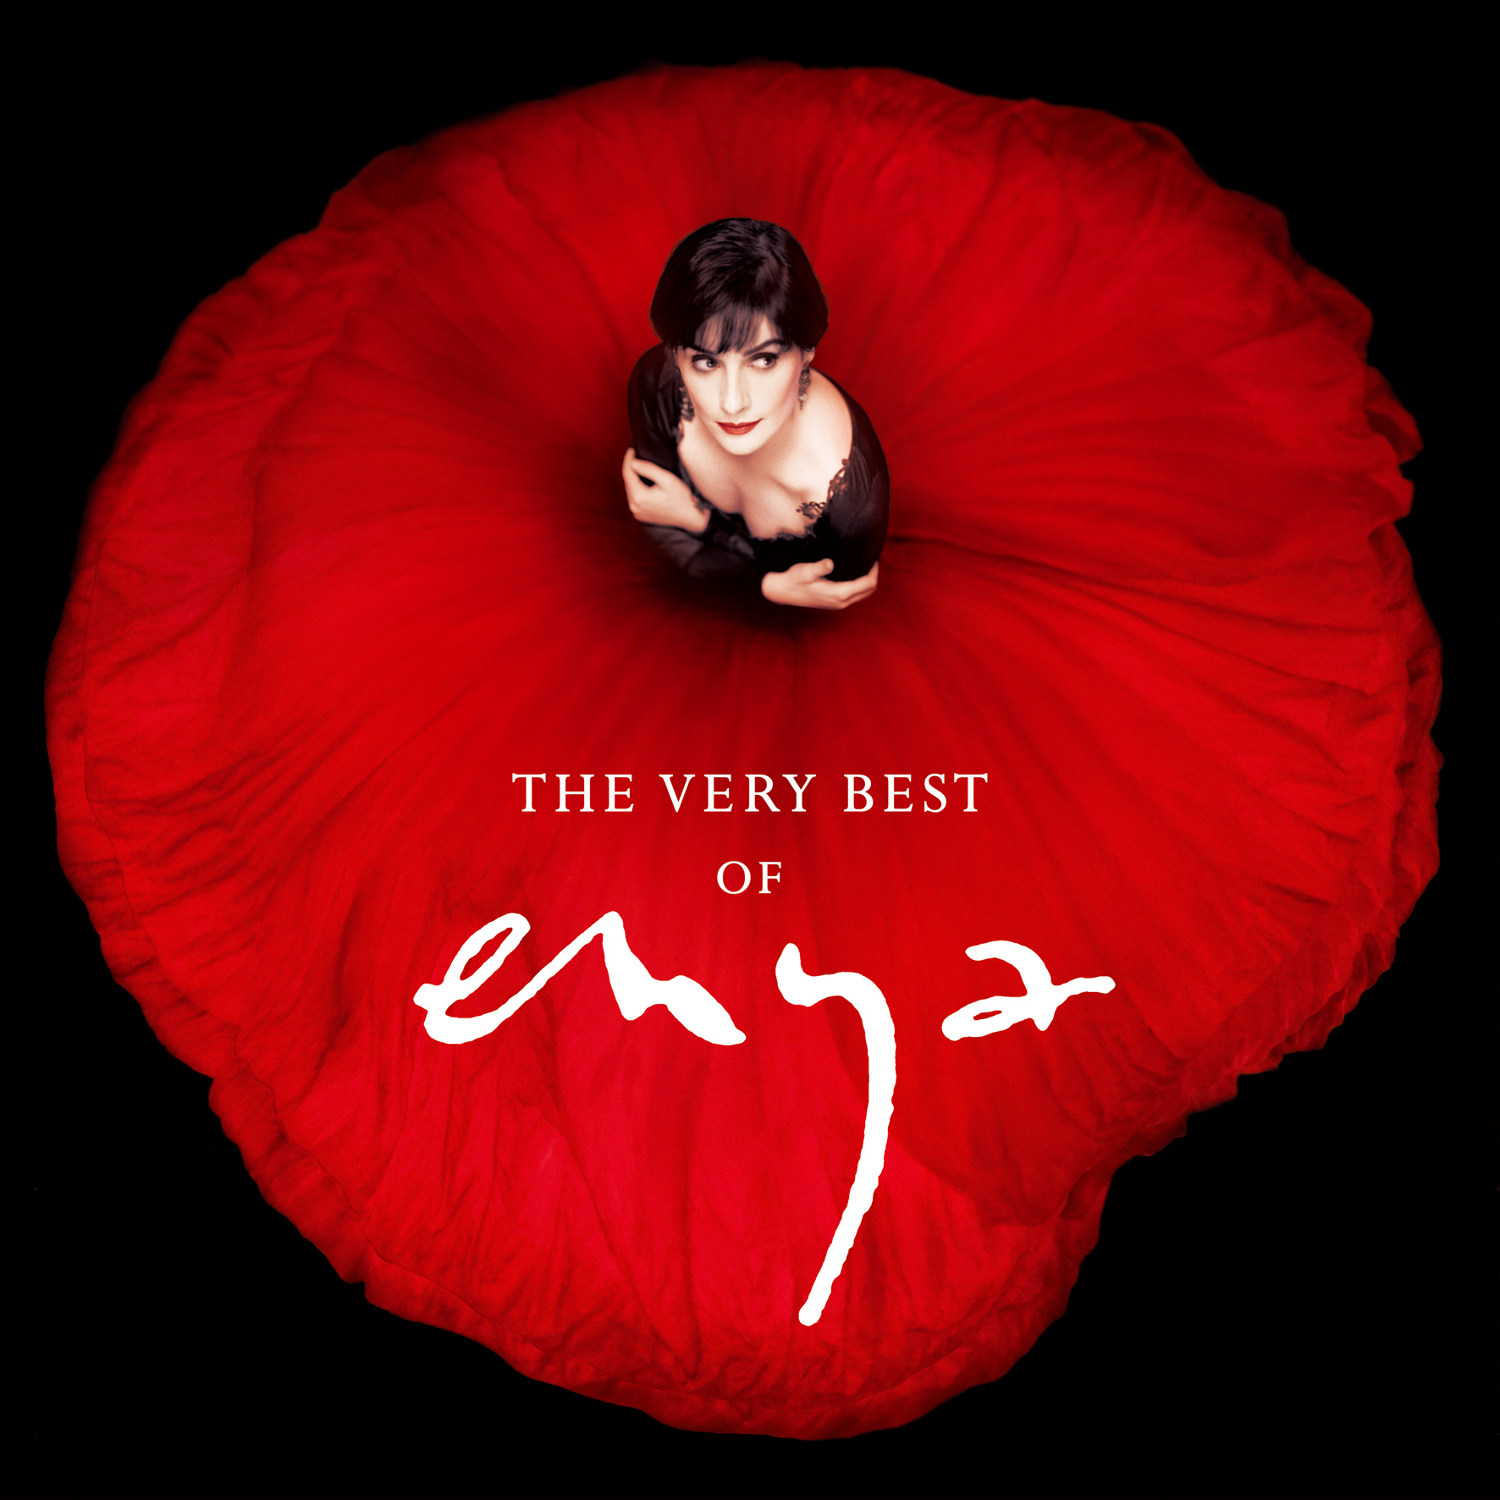 Enya - The Very Best of Enya [iTunes Plus AAC M4A] (2009)